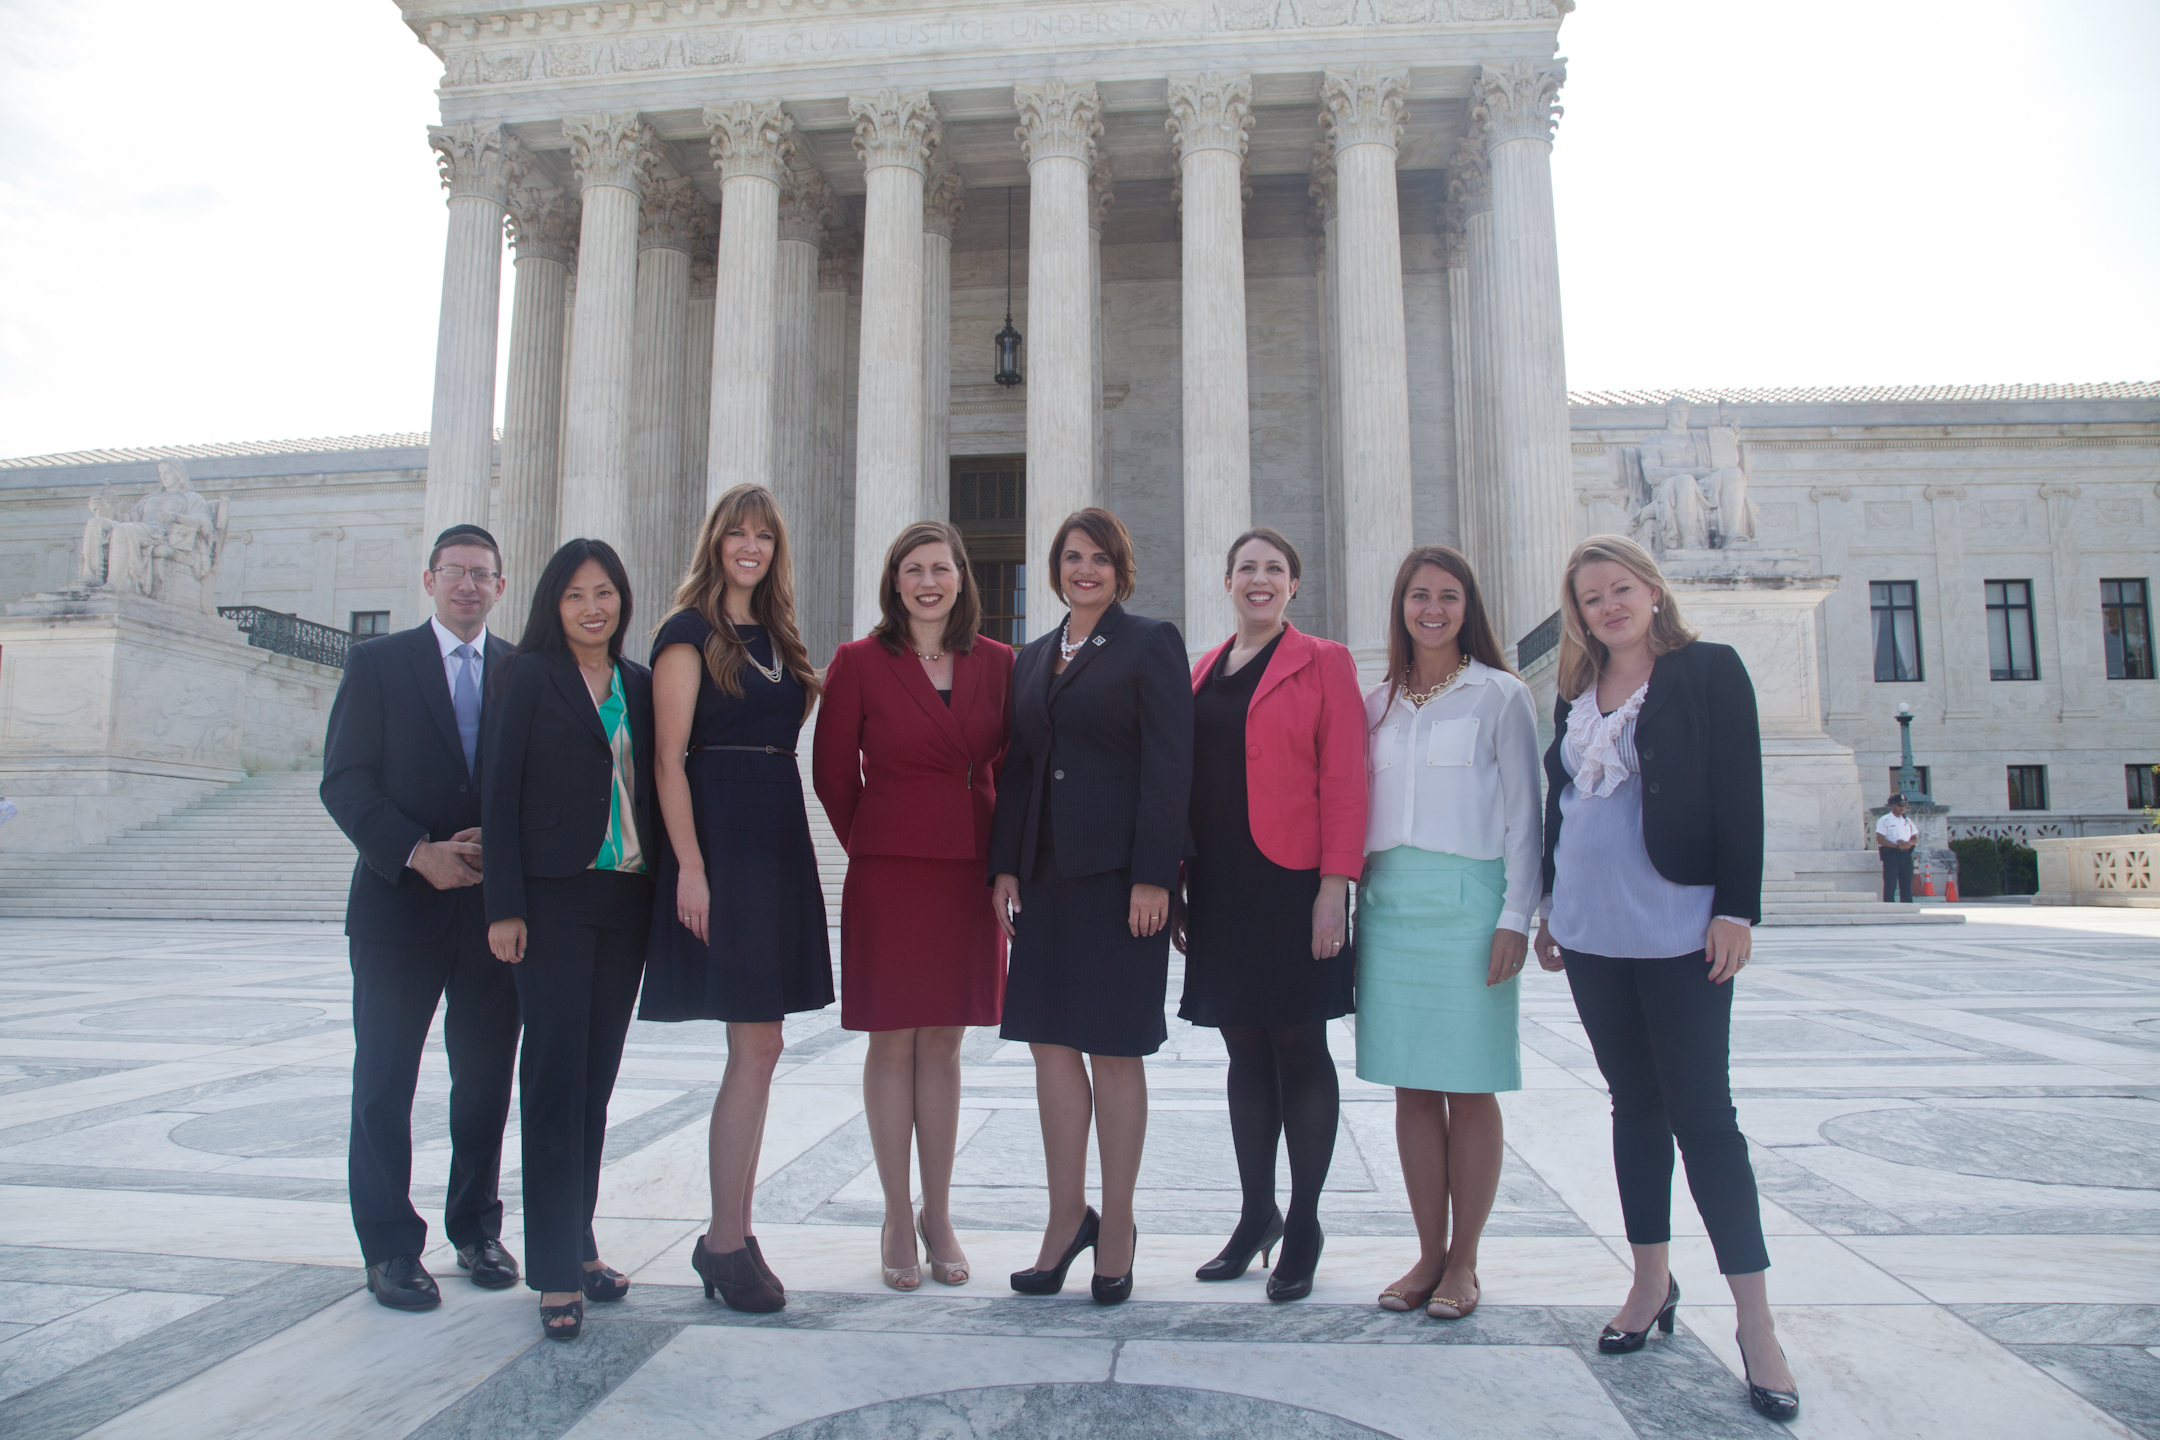 Counsel for The Becket Fund for Religious Liberty outside of the Supreme Court in Washington.